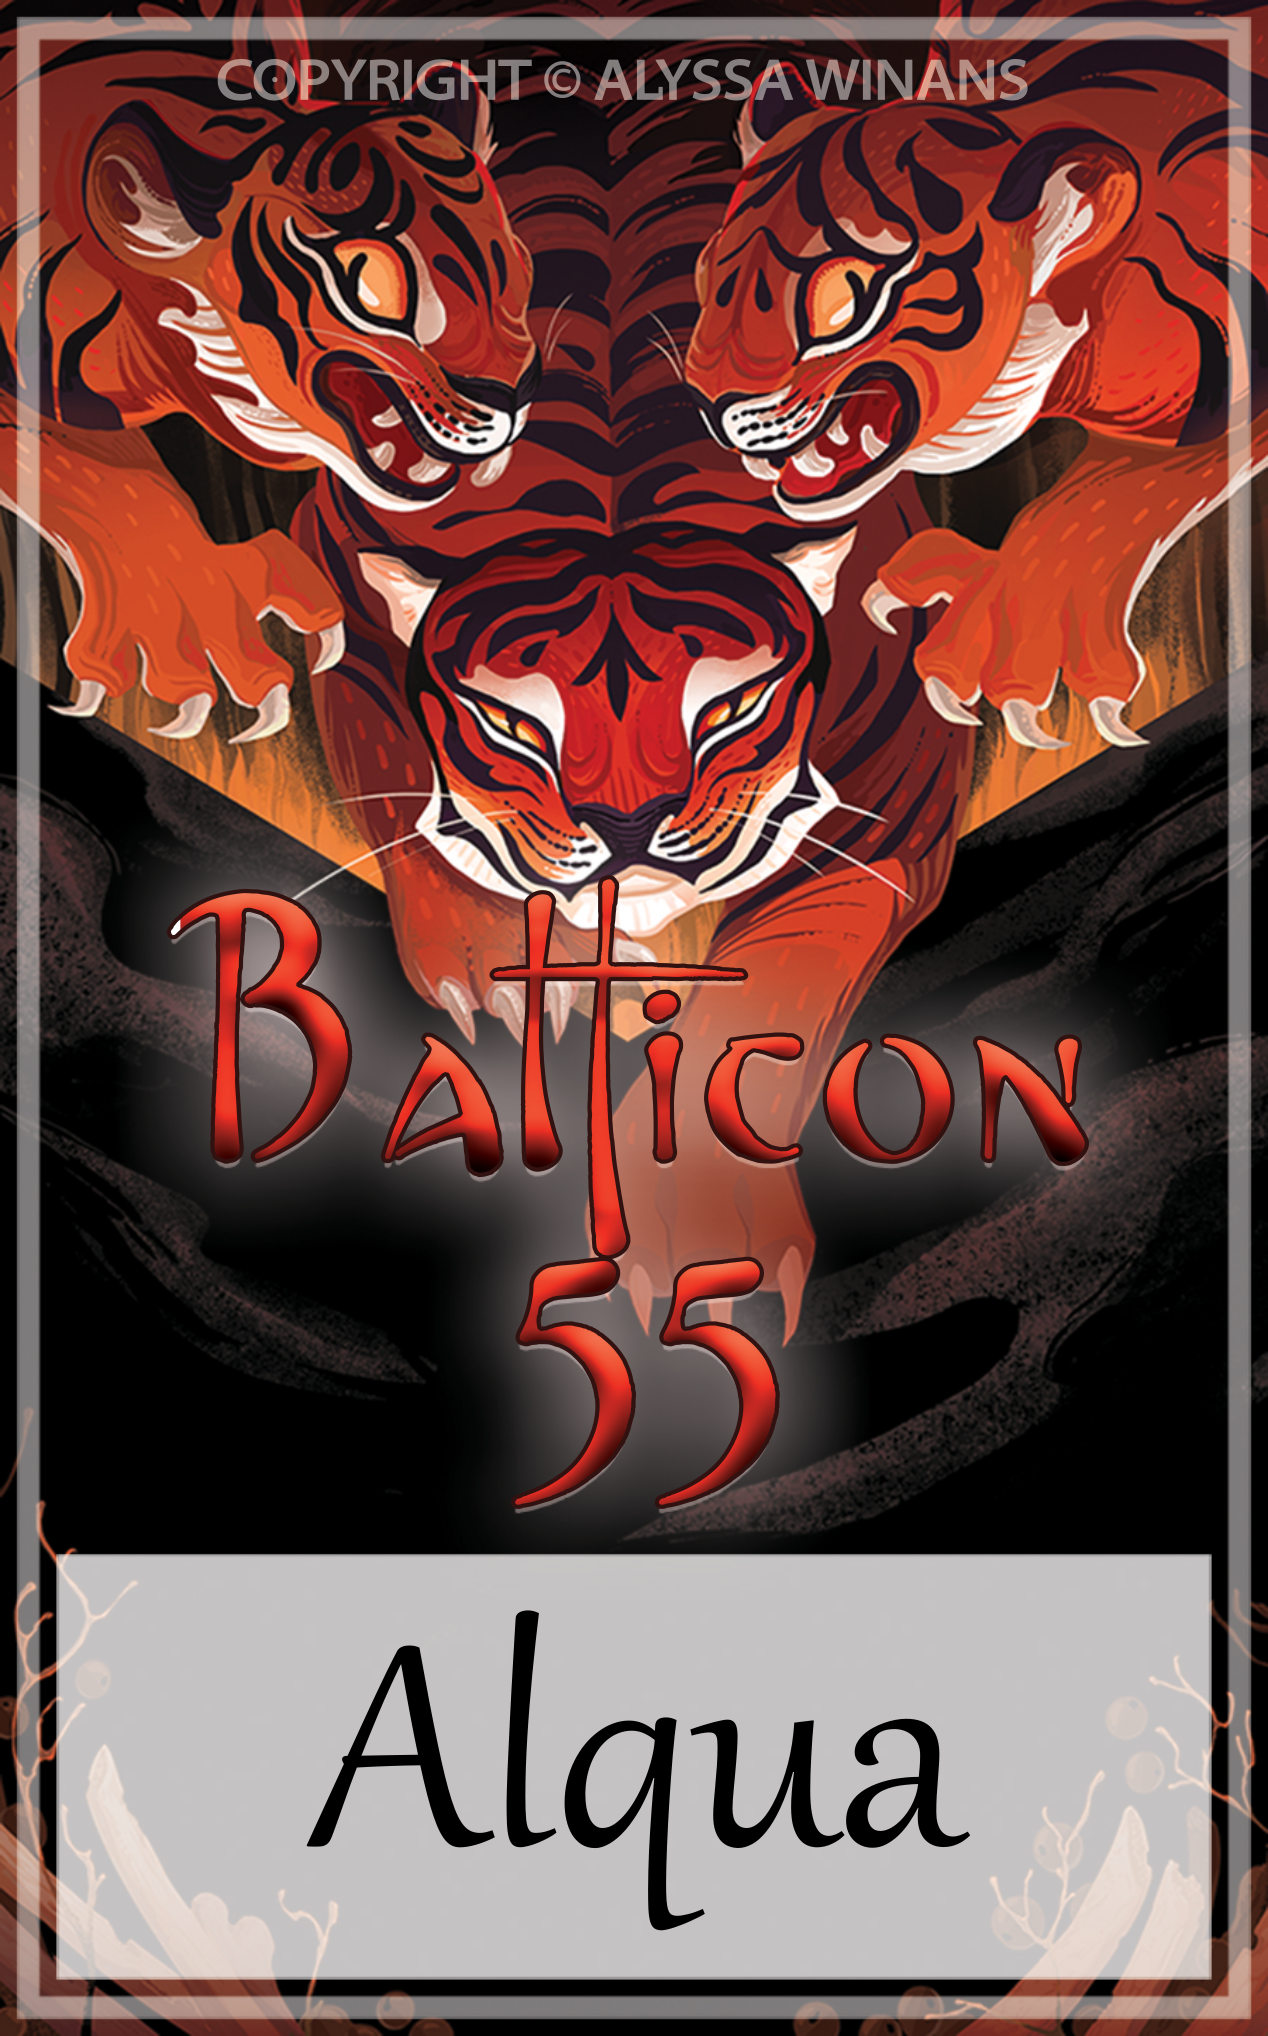 Convention Badge showing three tigers. The inscriptions top to bottom are: 'Copyright Alyssa Winans', 'Balticon 55', and 'Alqua'.